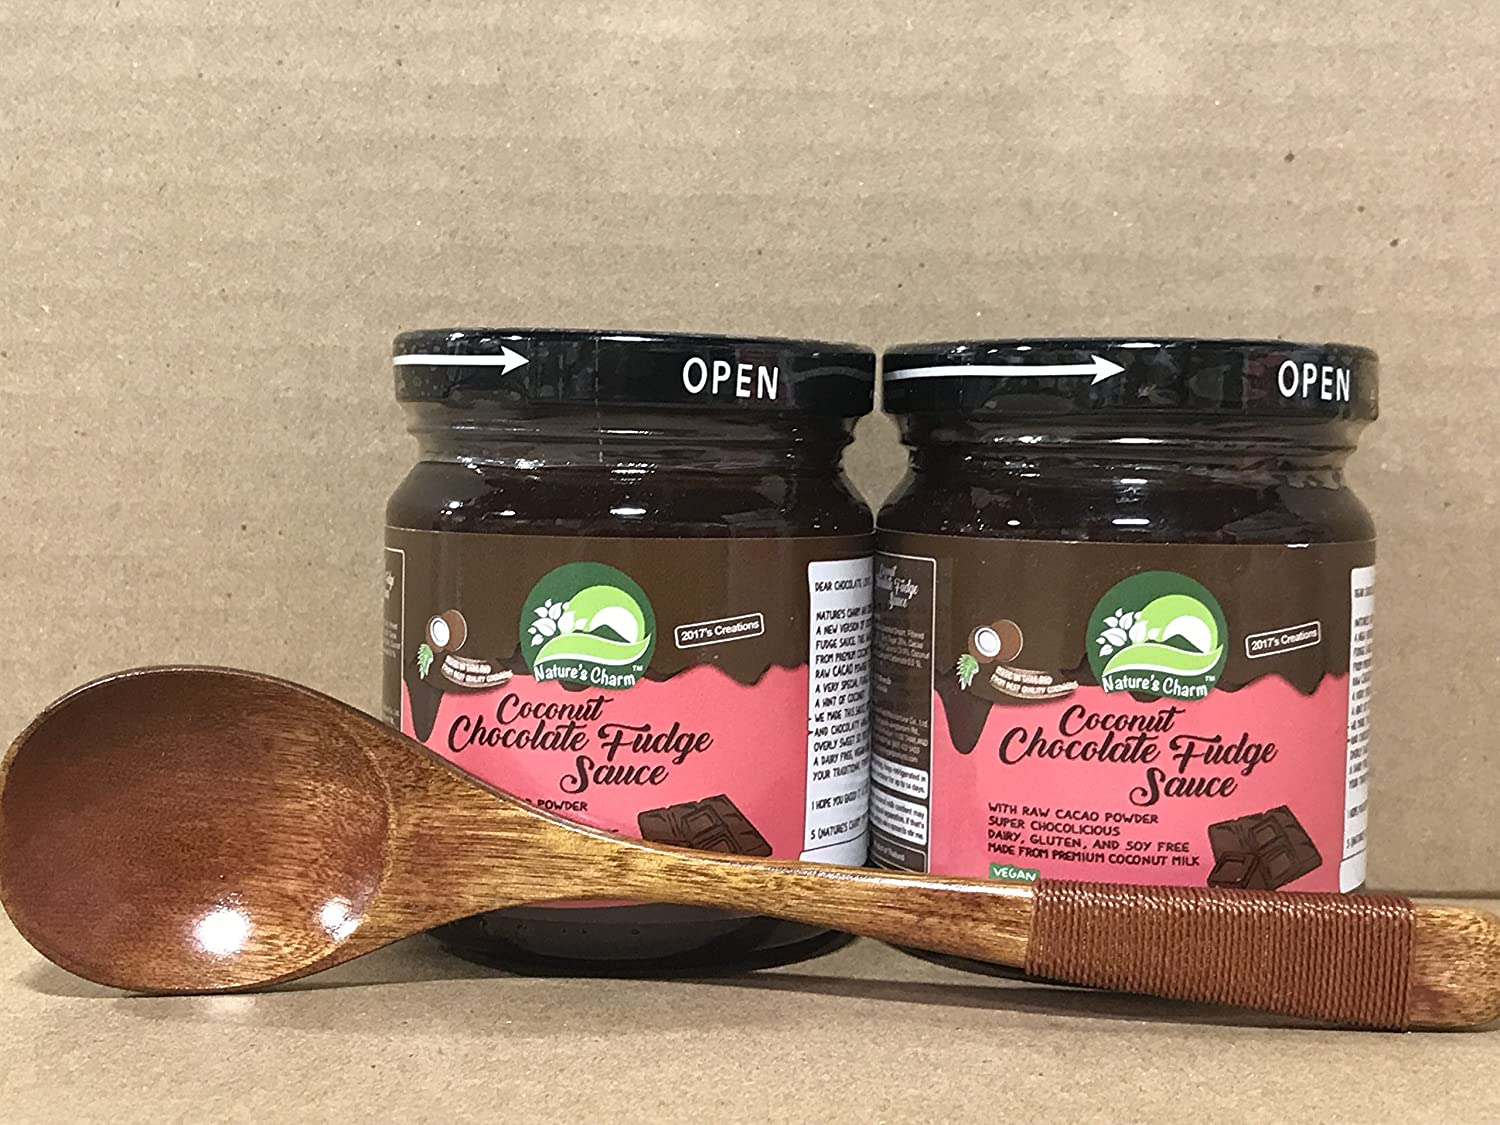 Amazon.com : Natures Charm Coconut Caramel Sauce 7oz Pack of 2 With FREE Natural Wood Spoon By KC Commerce (variety pack of 4) : Grocery & Gourmet Food